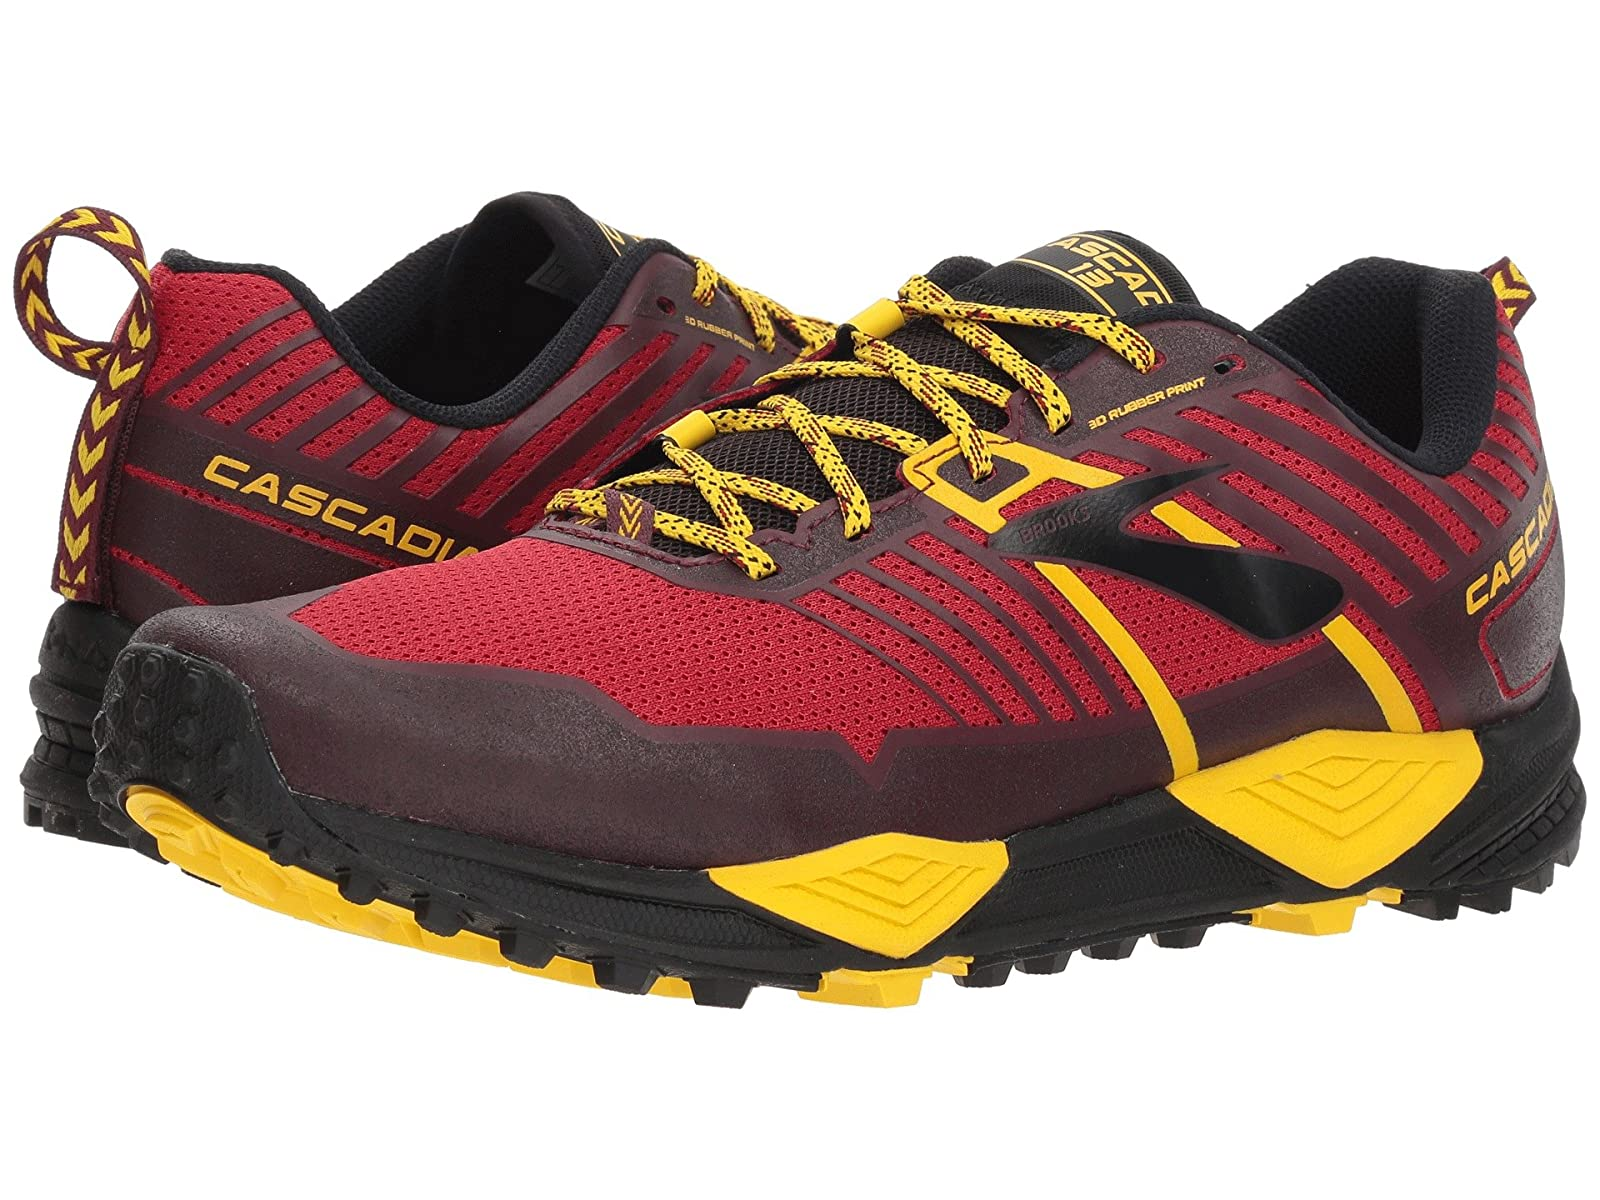 Brooks Cascadia 13Atmospheric grades have affordable shoes